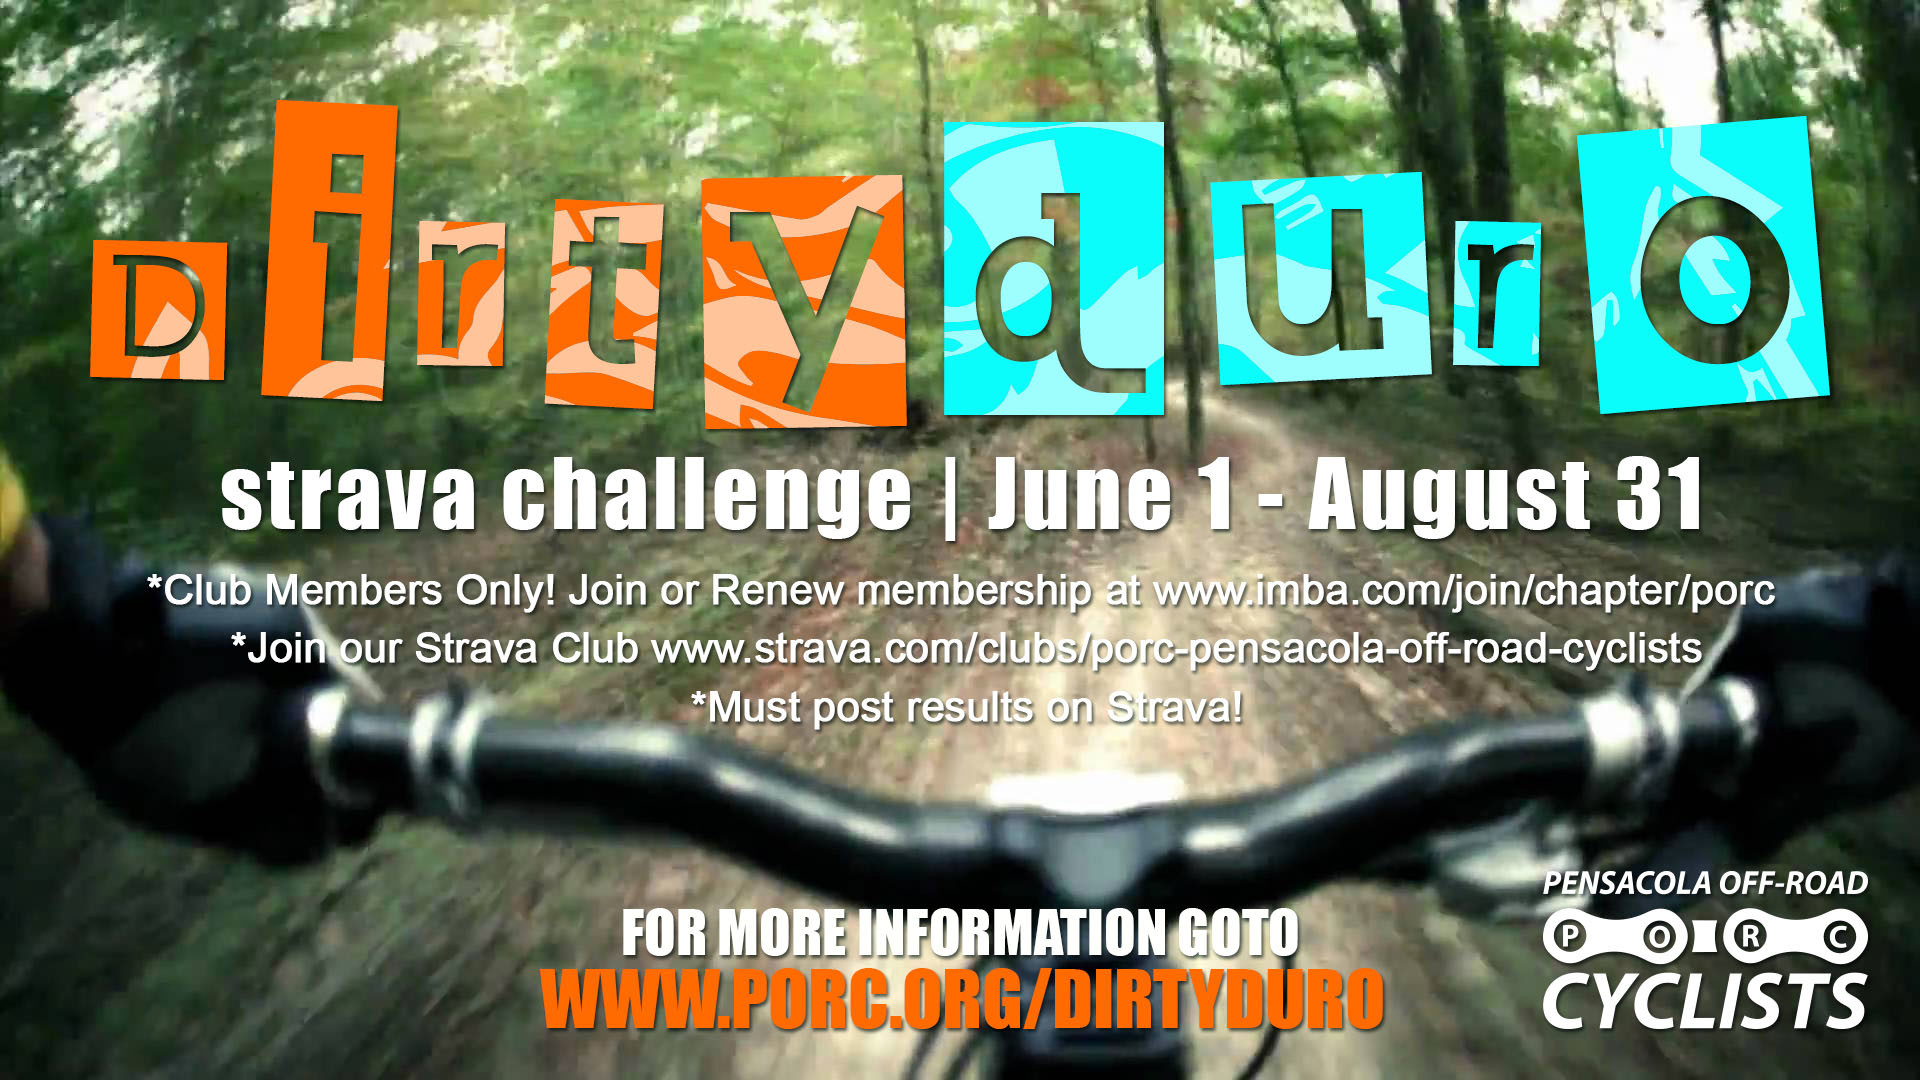 DIRTYDURO CHALLENGE | Pensacola Off-Road Cyclists